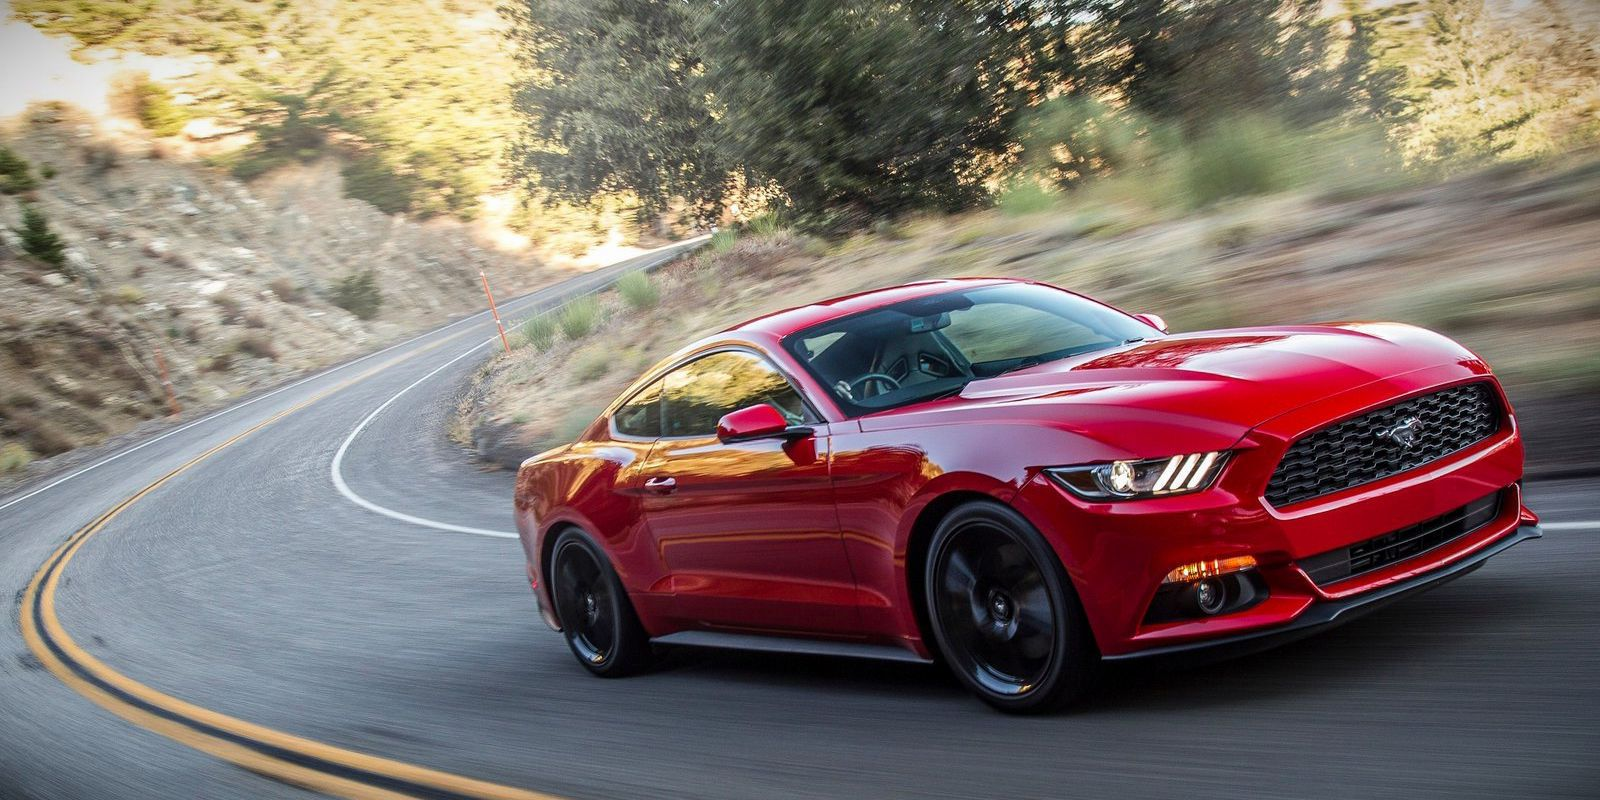 2019 Ford Mustang available